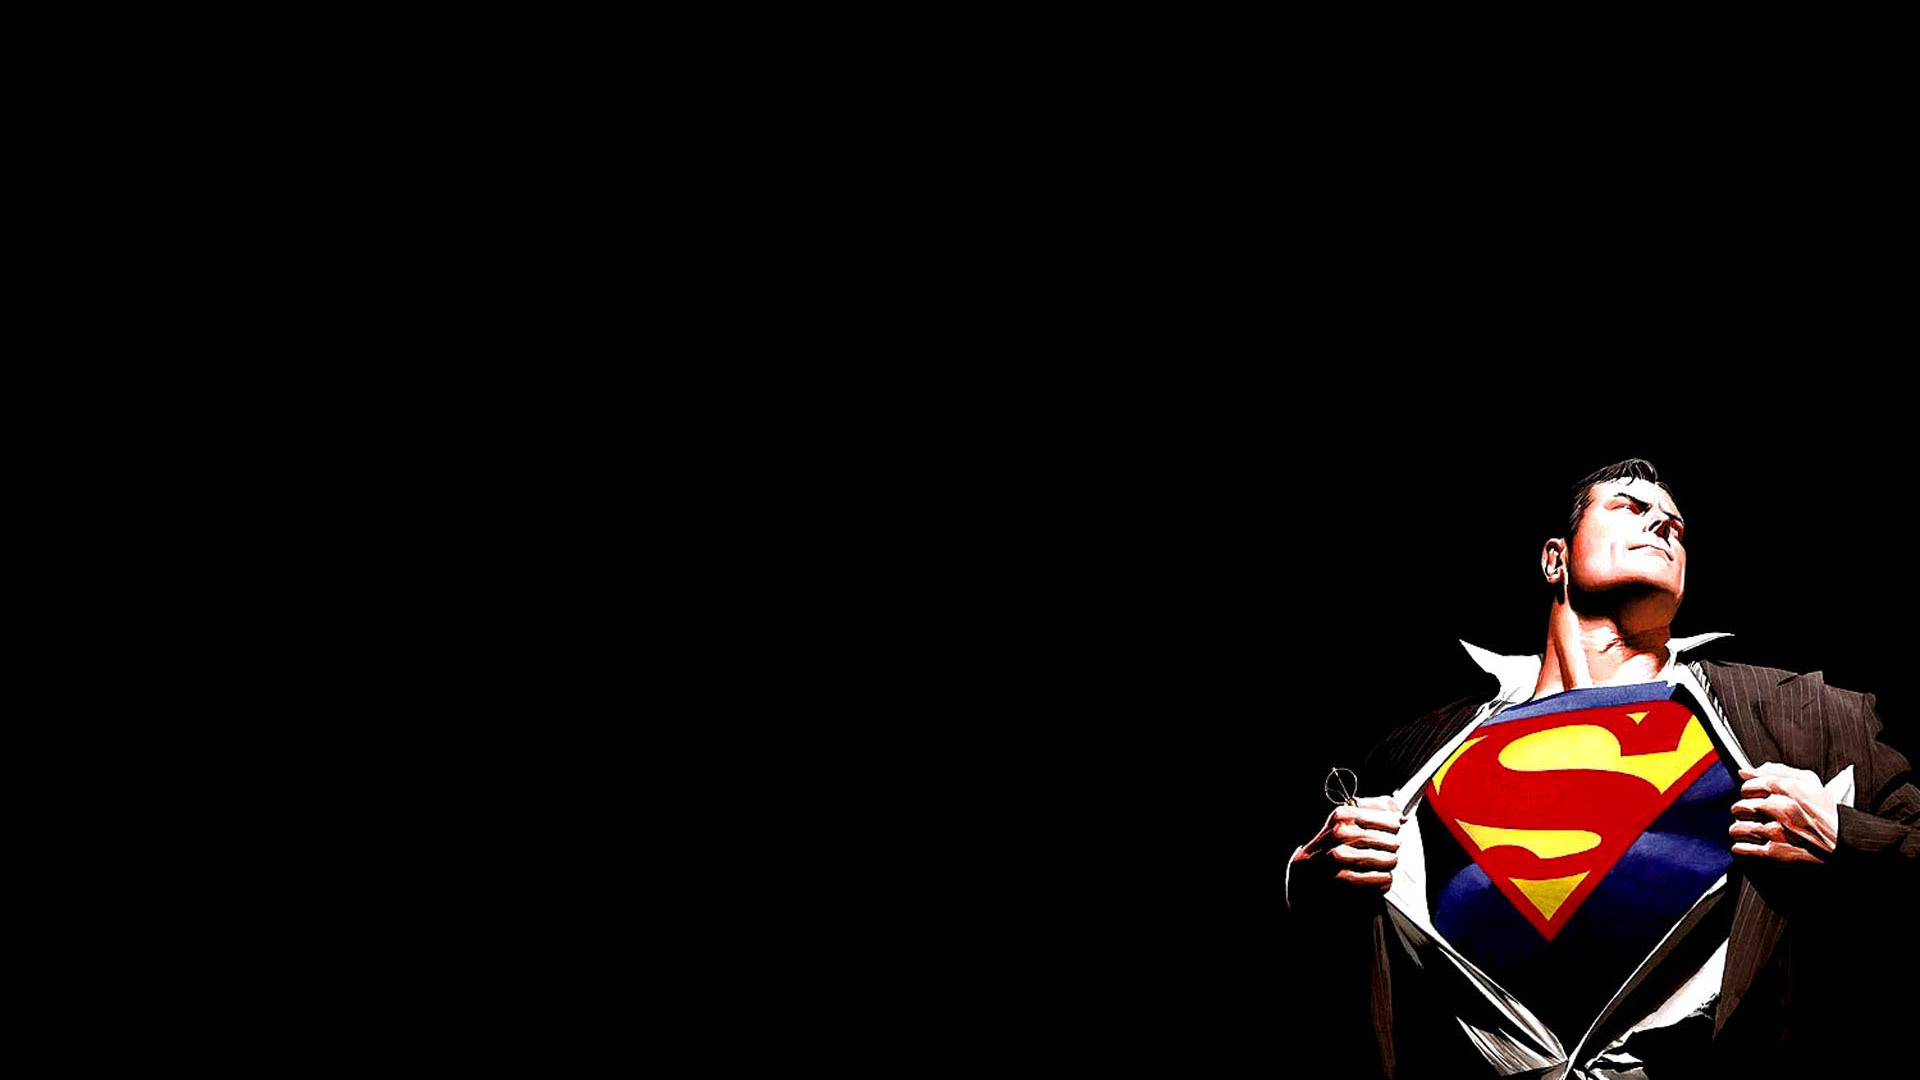 Superman Hd Wallpaper For Iphone 5 Superman Full Hd Wallpaper And Background Image